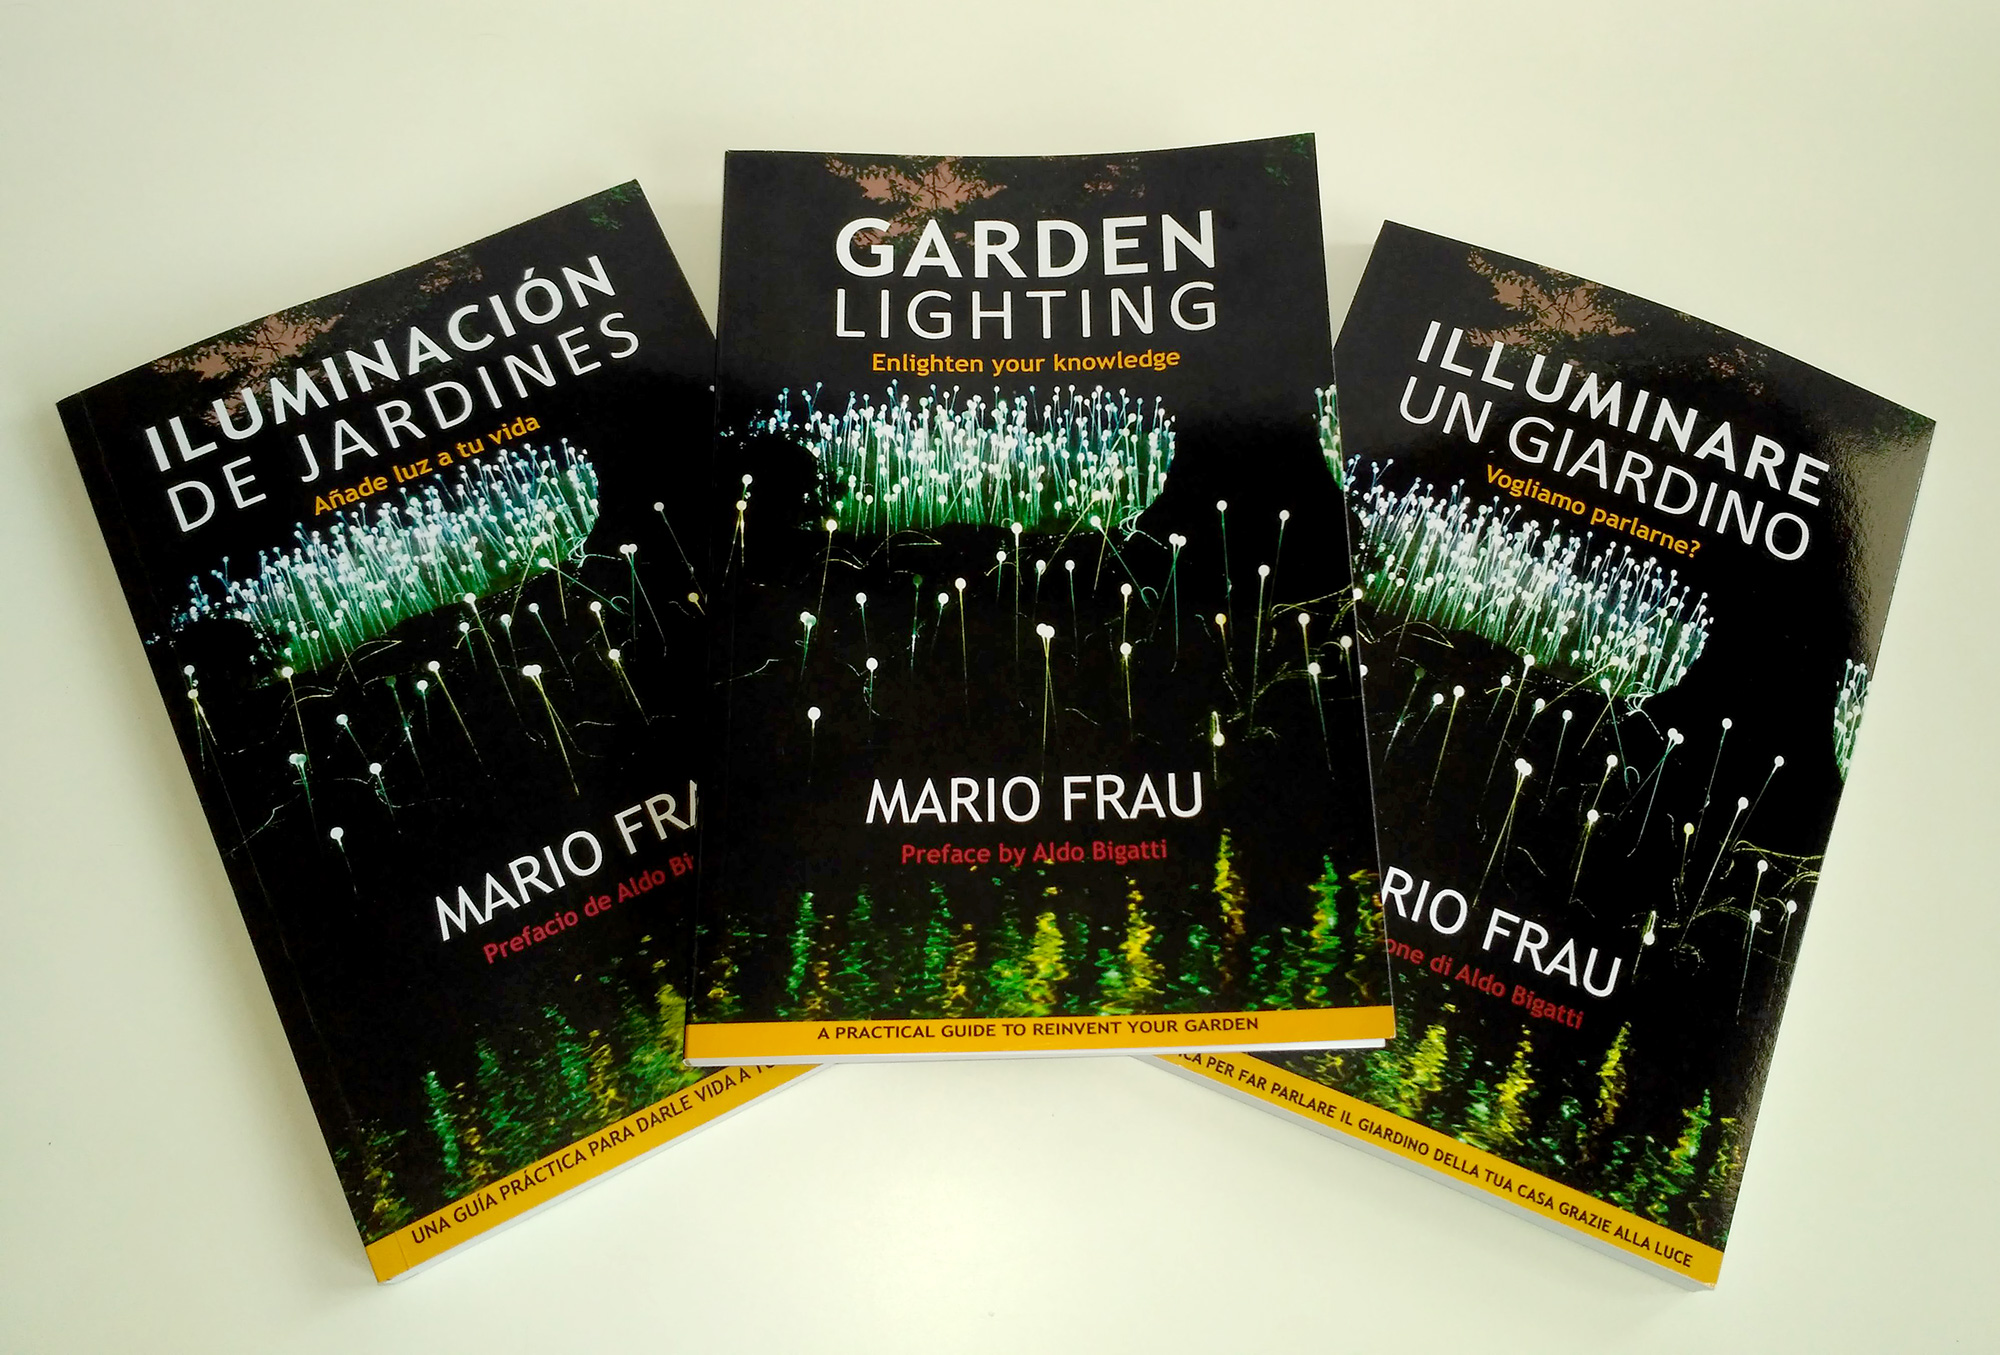 Learn how to enhance your garden's look with Garden Lighting by Mario Frau